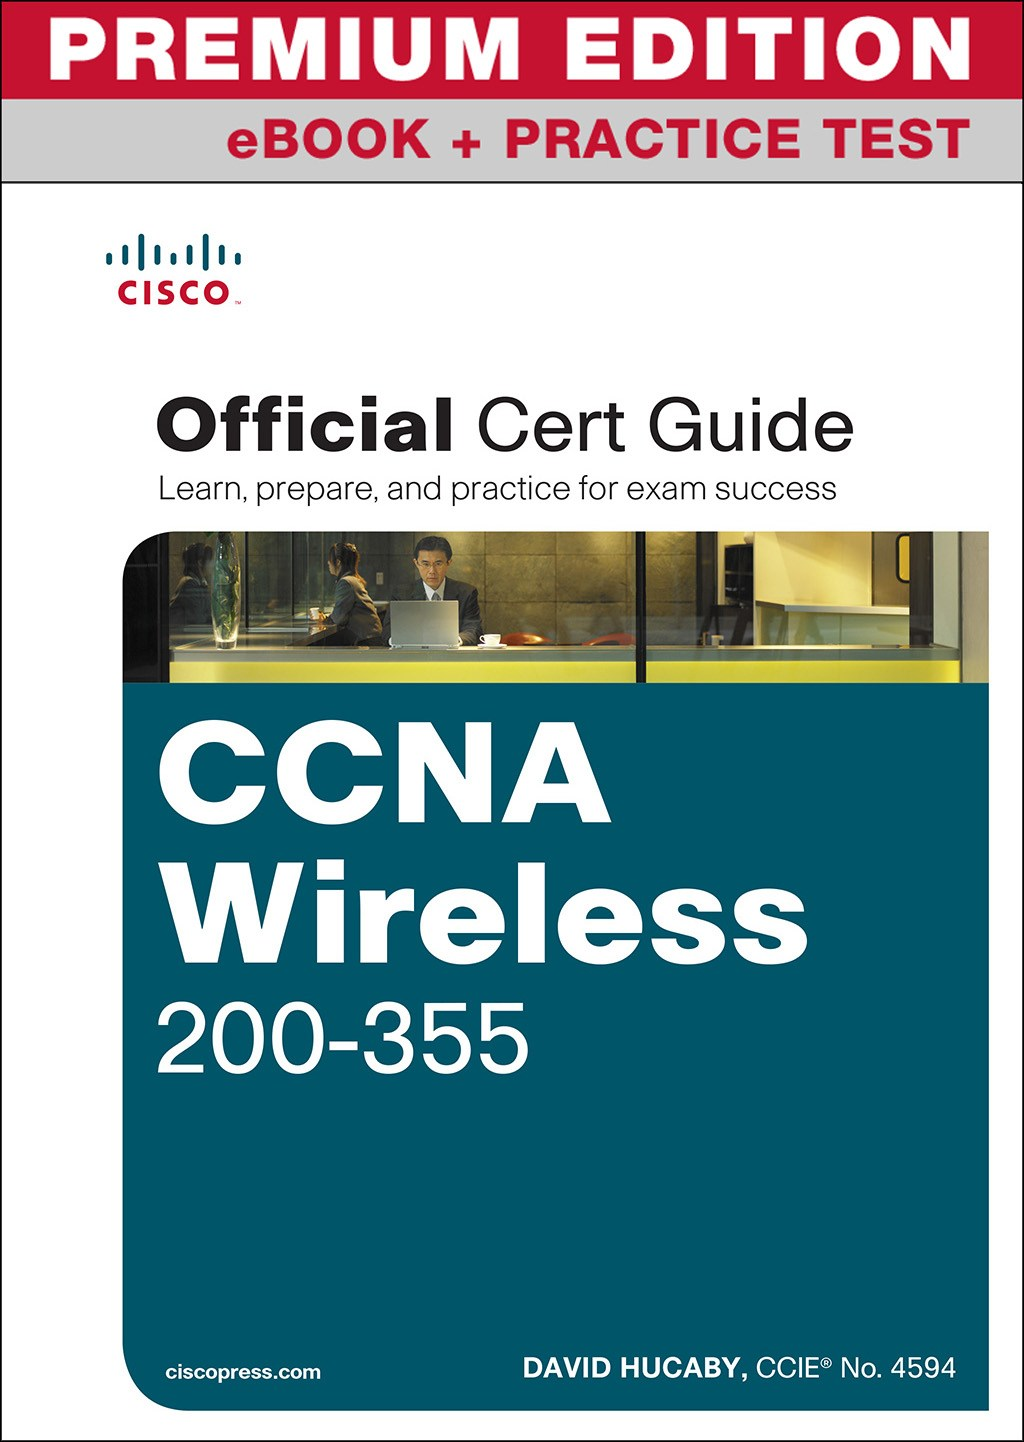 CCNA Wireless 200-355 Official Cert Guide Premium Edition and Practice Test